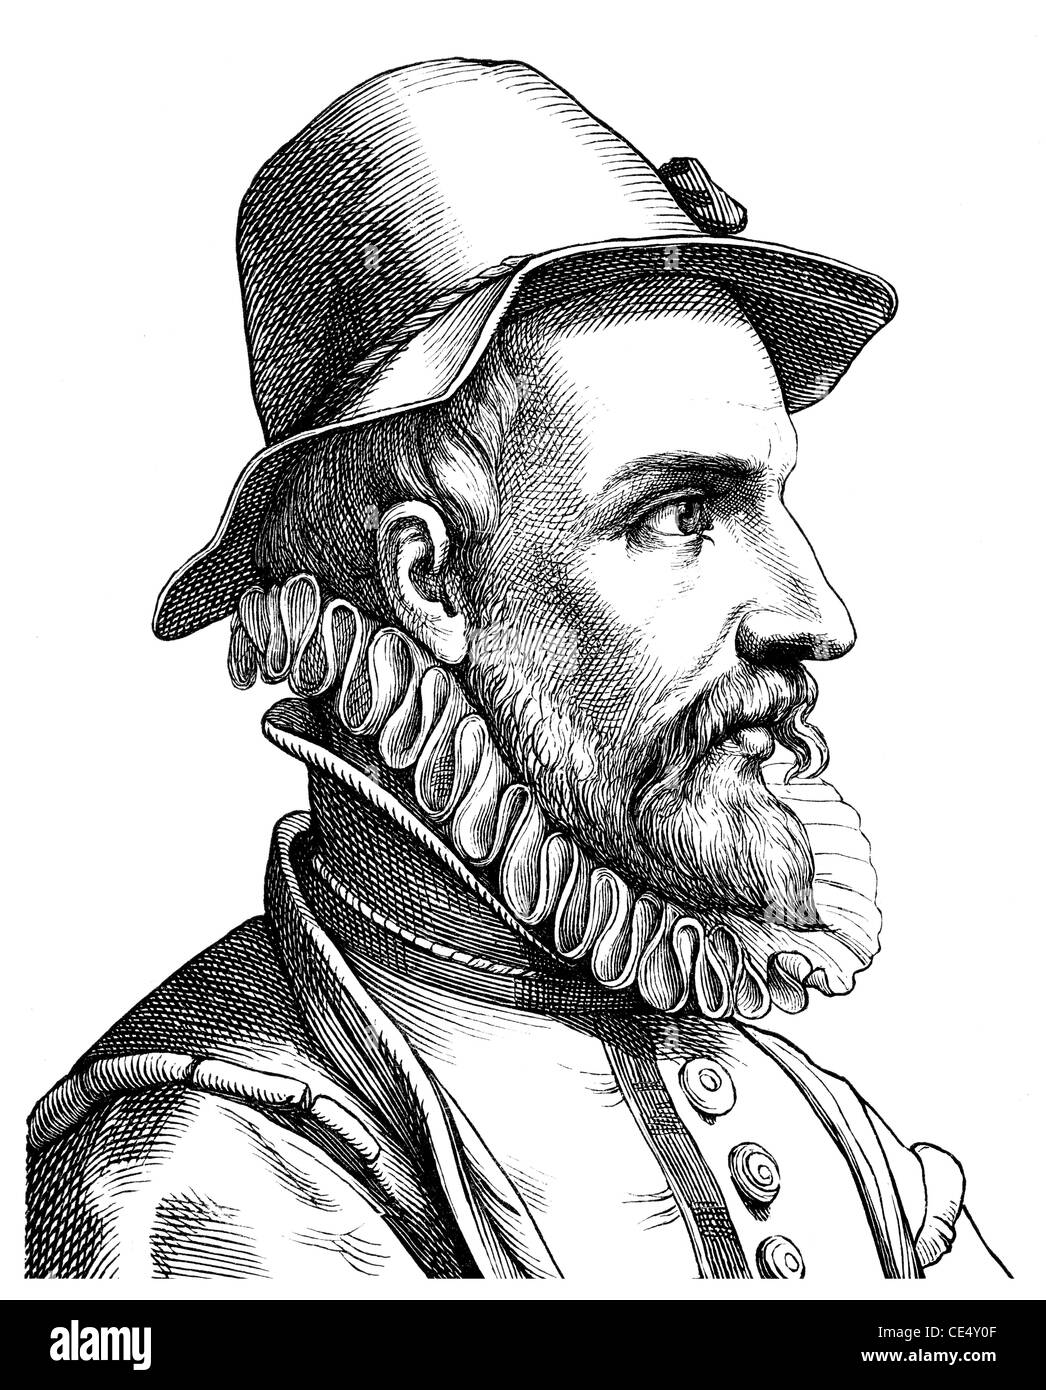 Historical drawing of the 19 th century, Johann Fischart, 1550-1591, German poet and writer - Stock Image